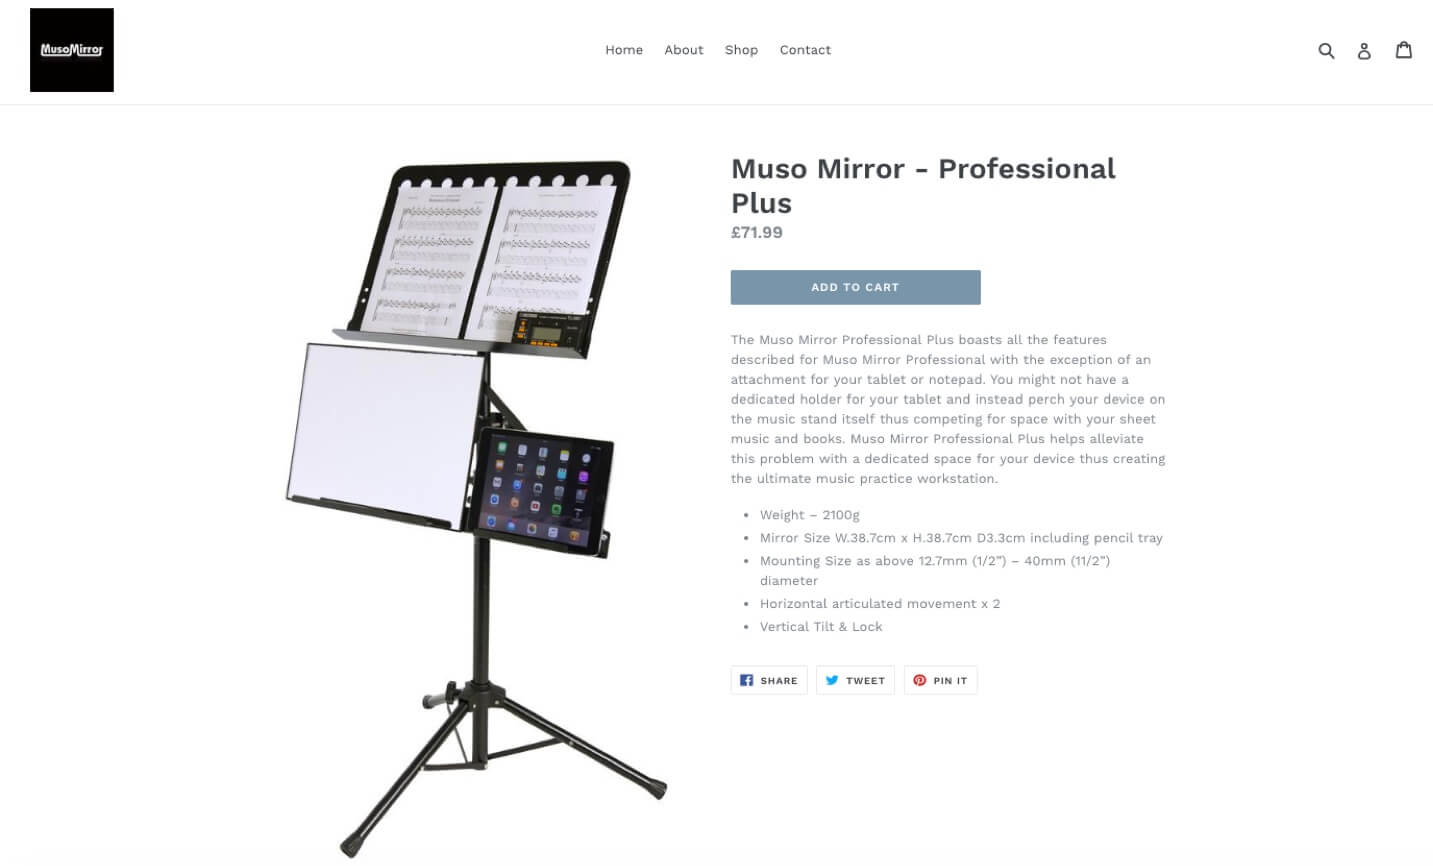 Product page - Muso Mirror eCommerce site